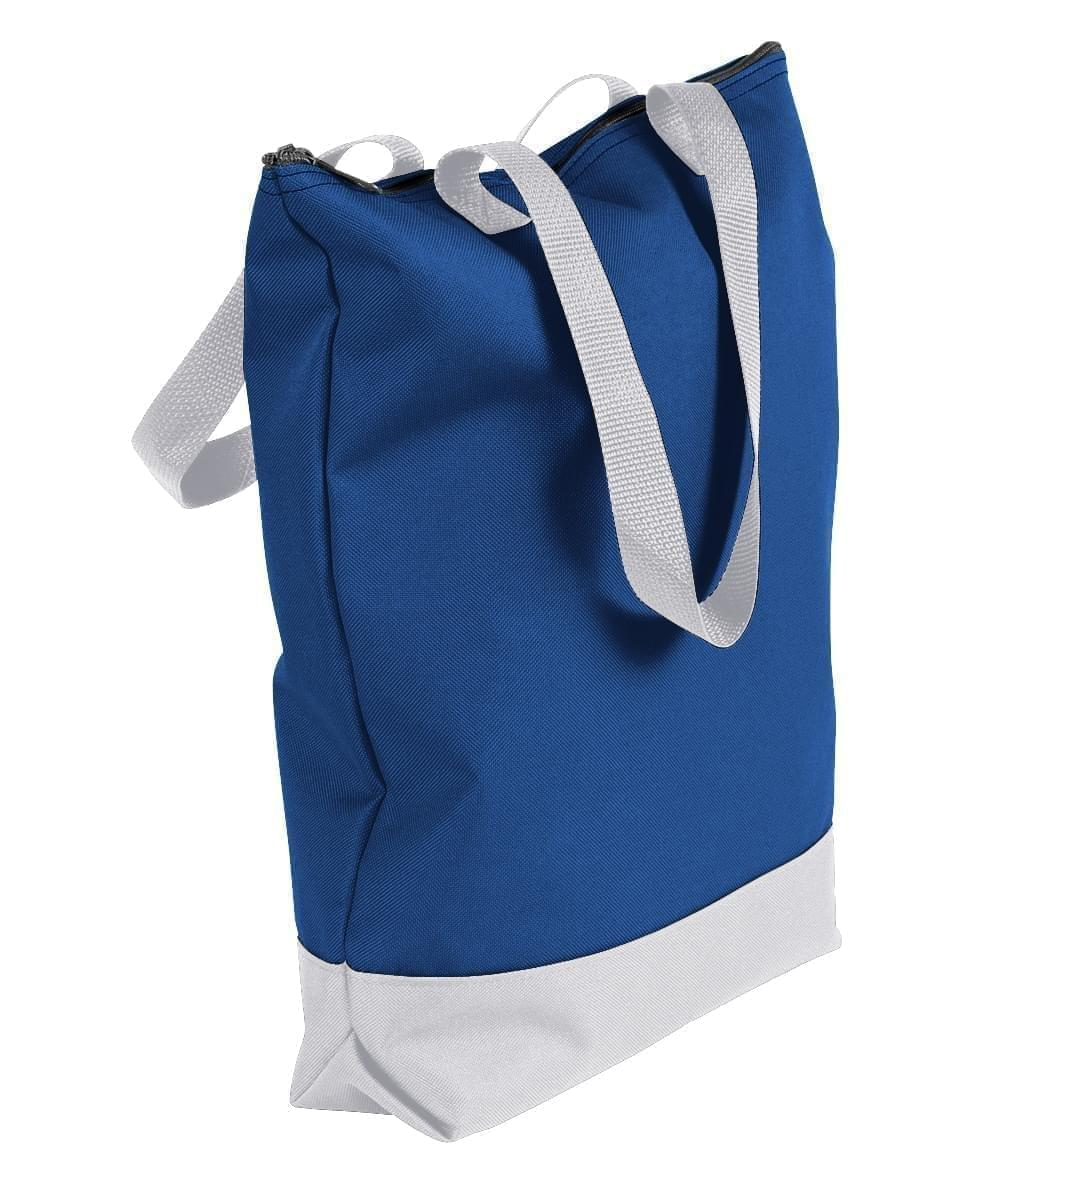 USA Made Canvas Portfolio Tote Bags, Royal Blue-White, 1AAMX1UAF4